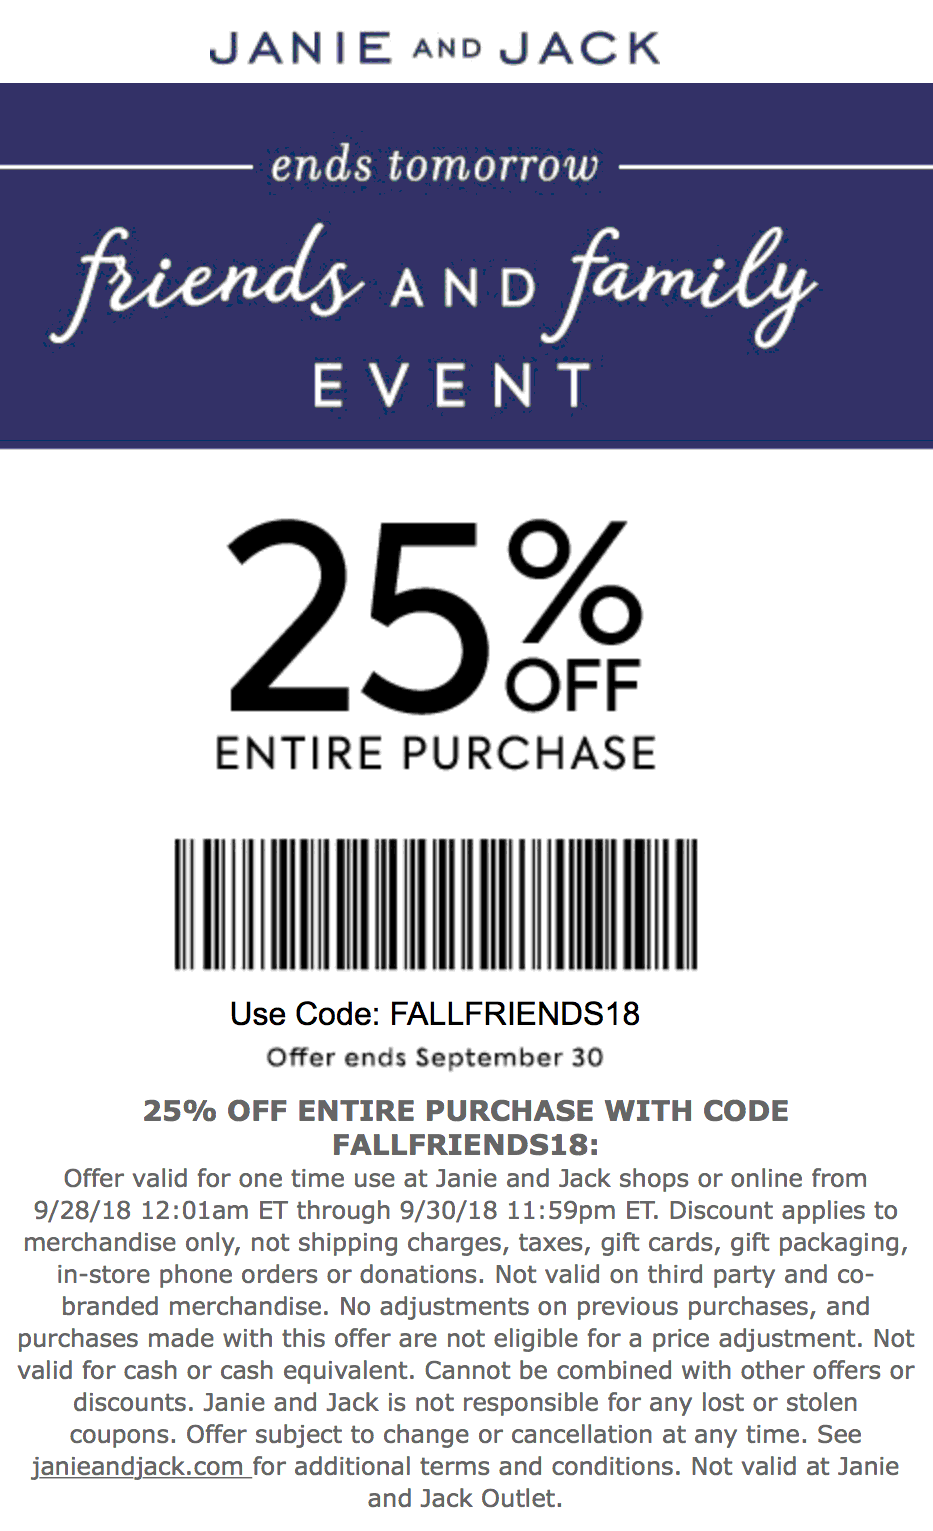 Janie and Jack coupons & promo code for [February 2020]